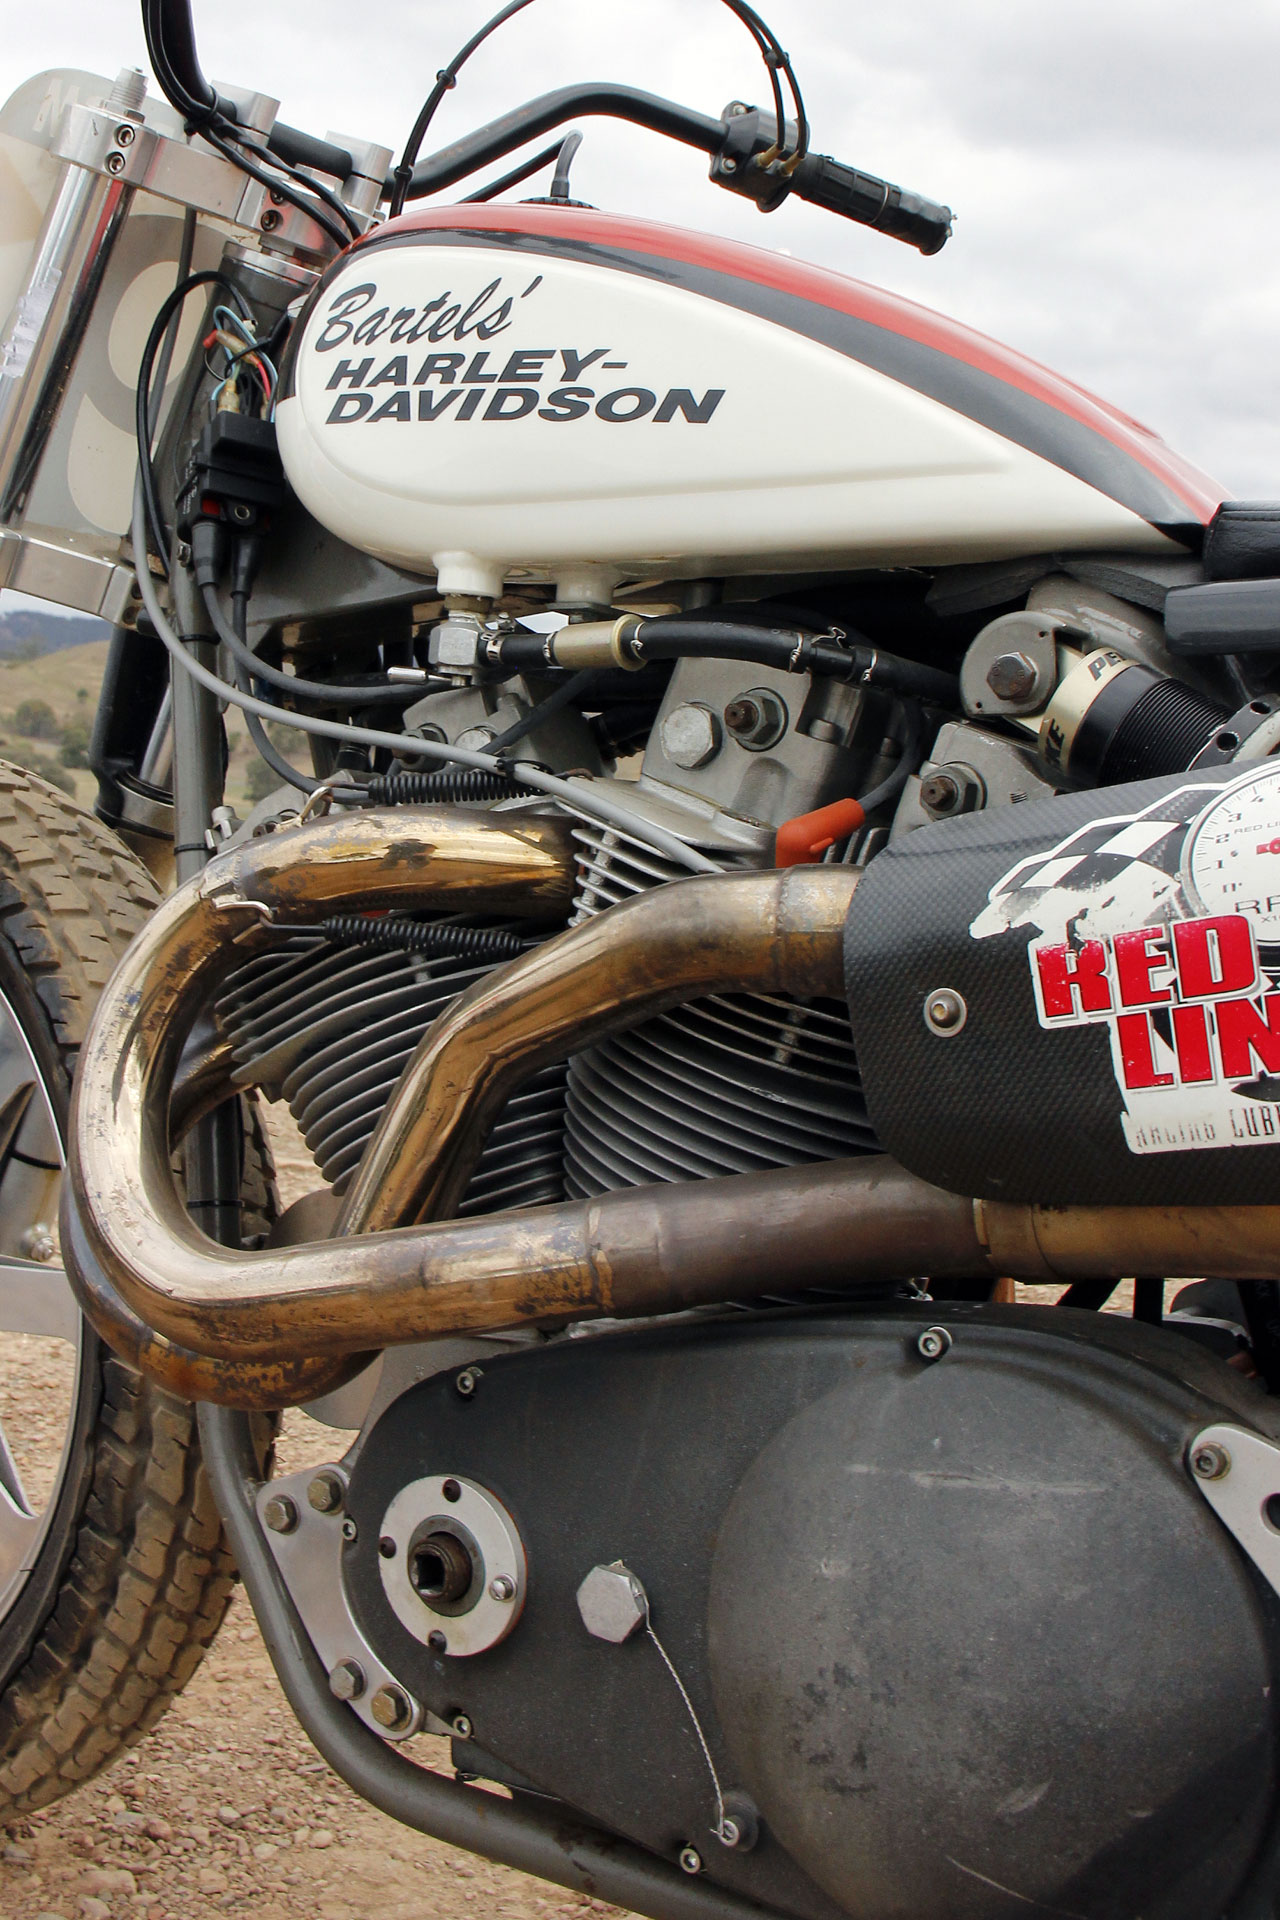 The adoption of the all alloy engine from 1972 for the XR 750 was a big step forward